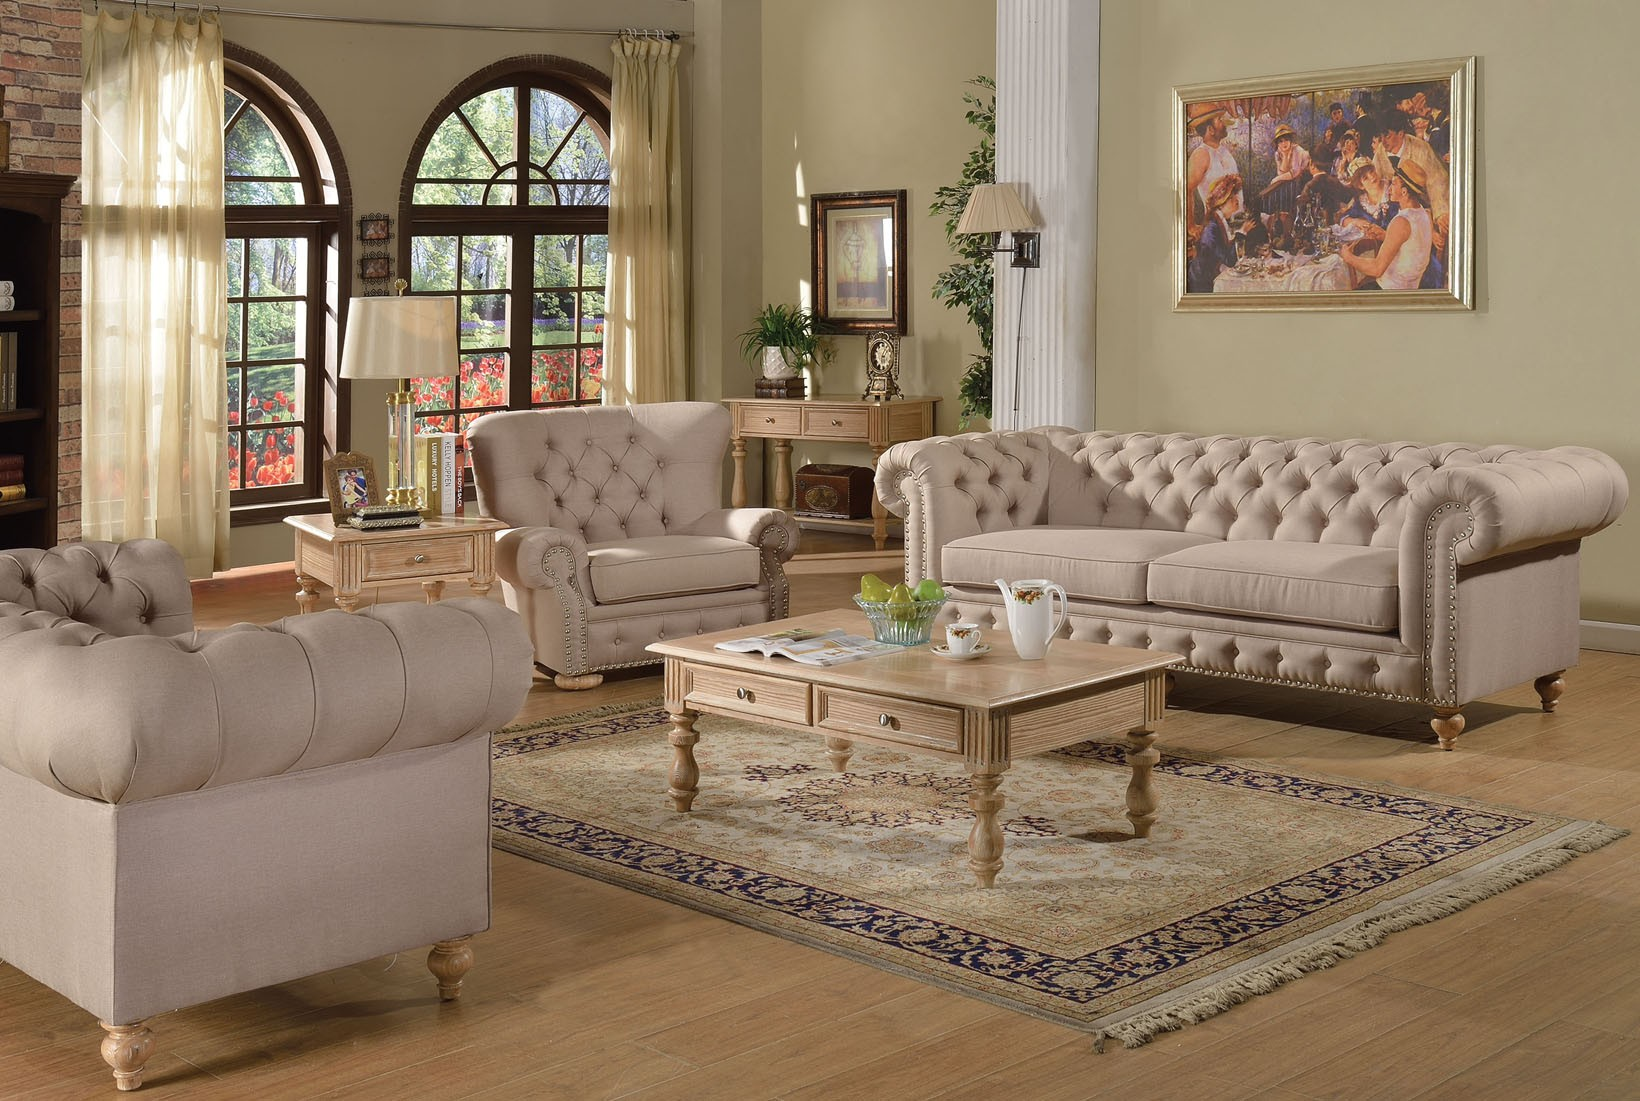 2pc Sofa Set Beige Fabric Traditional Living Room Hot